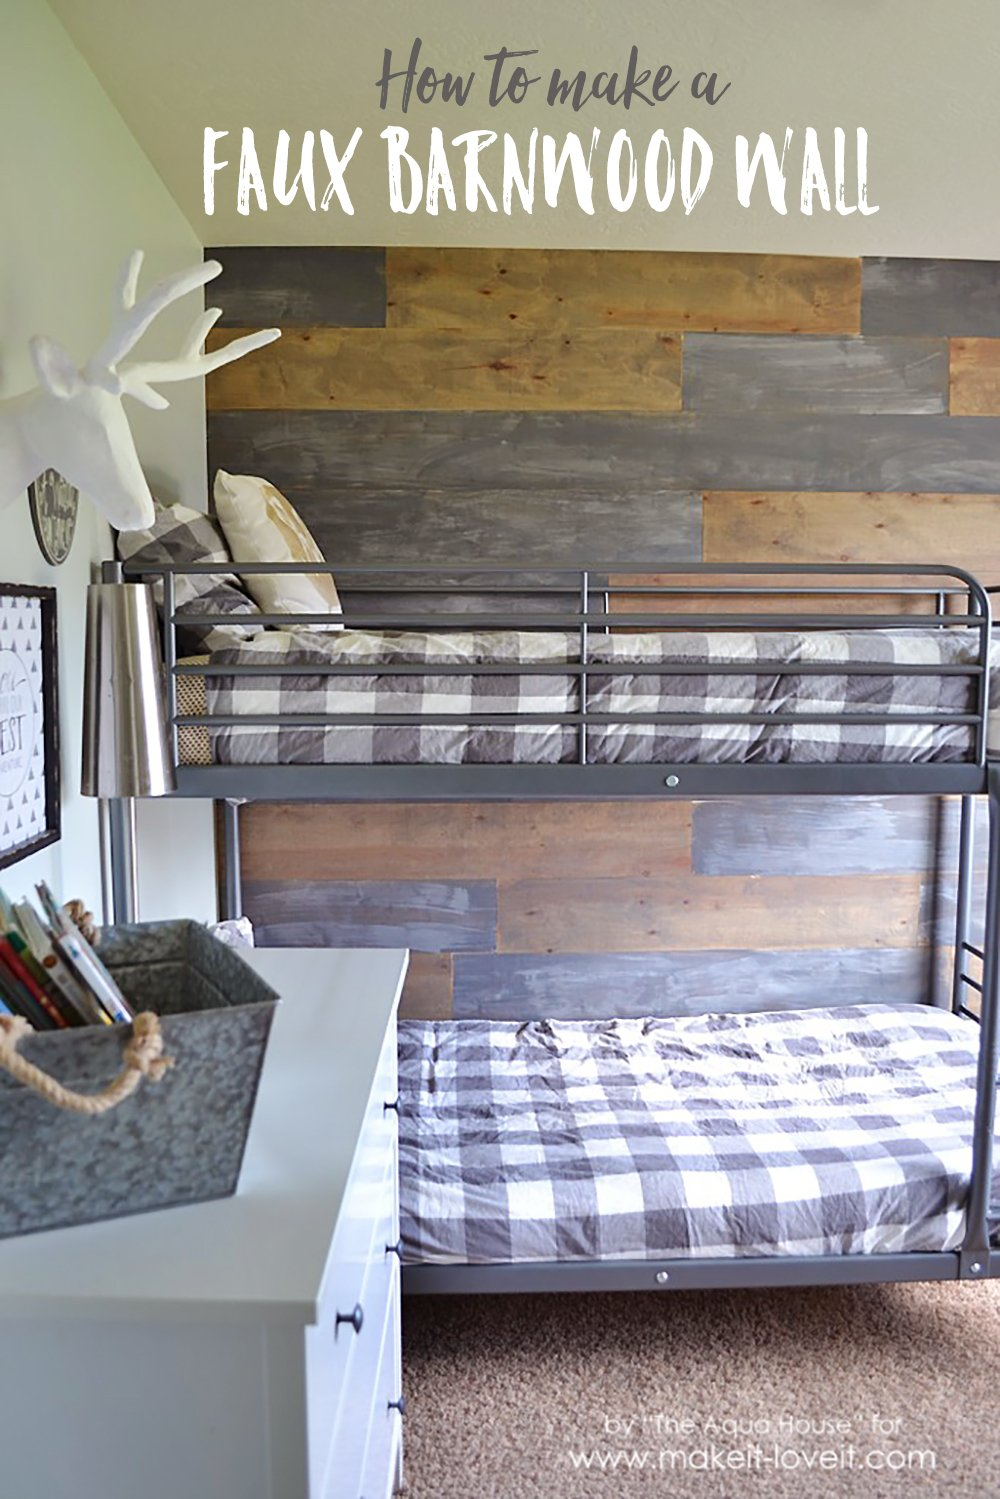 How to Make a Faux Barn Wood Wall